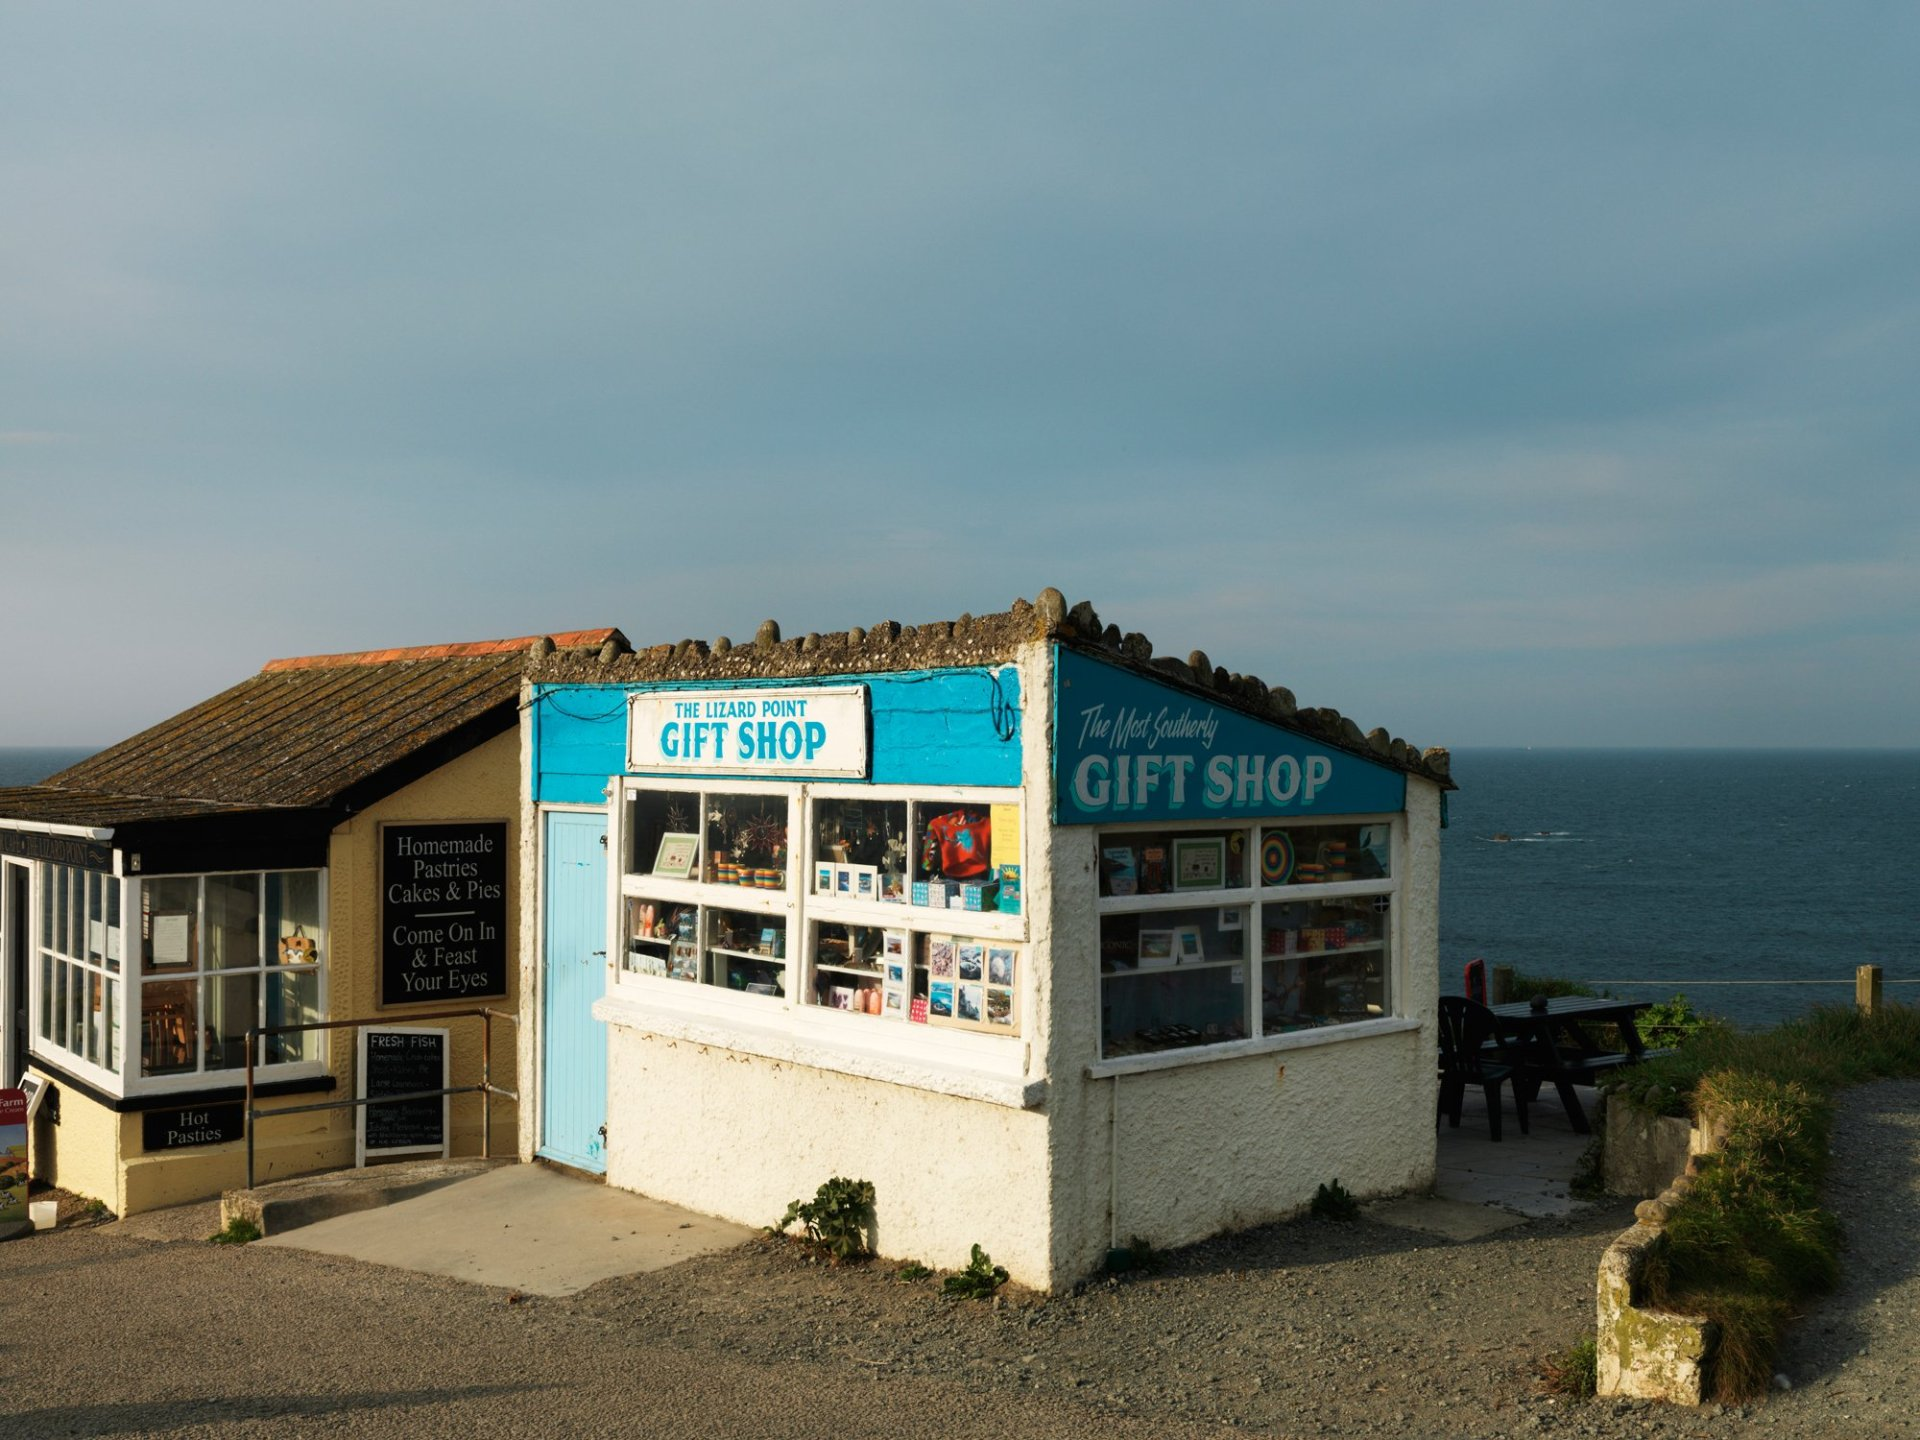 The Most Southerly Gift Shop Lizard point Cornwall 2012